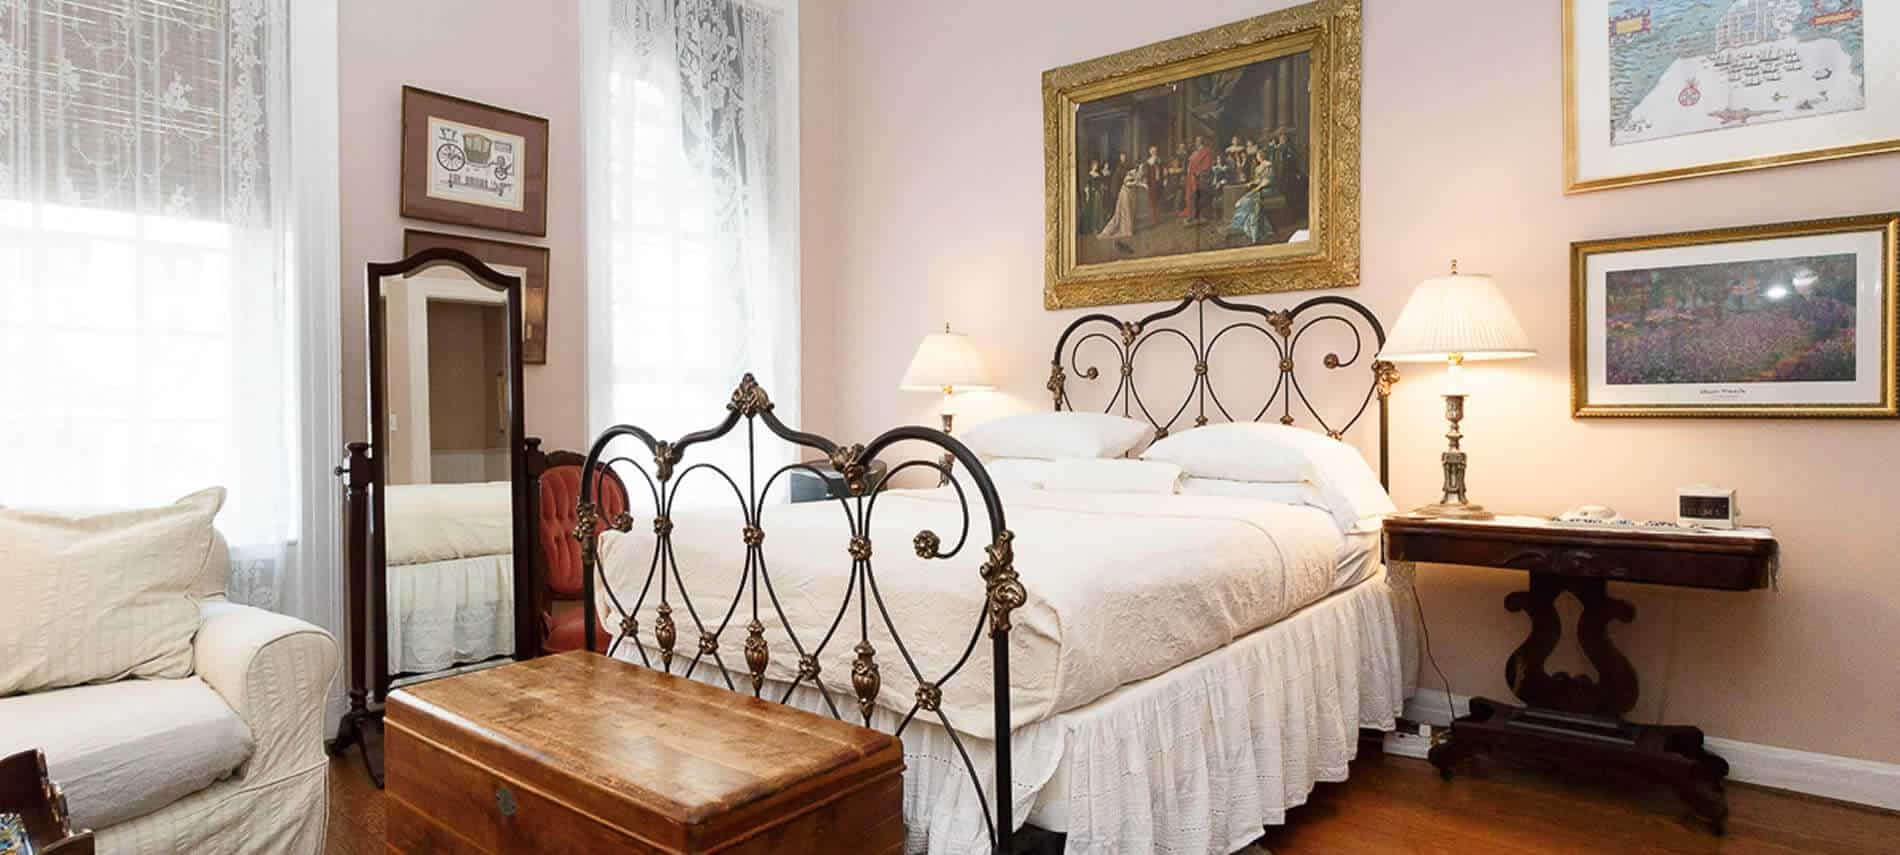 Bedroom furnished with a white & cream bed with a dark ornate bedframe, a standing mirror, two bedstands, & wooden chest